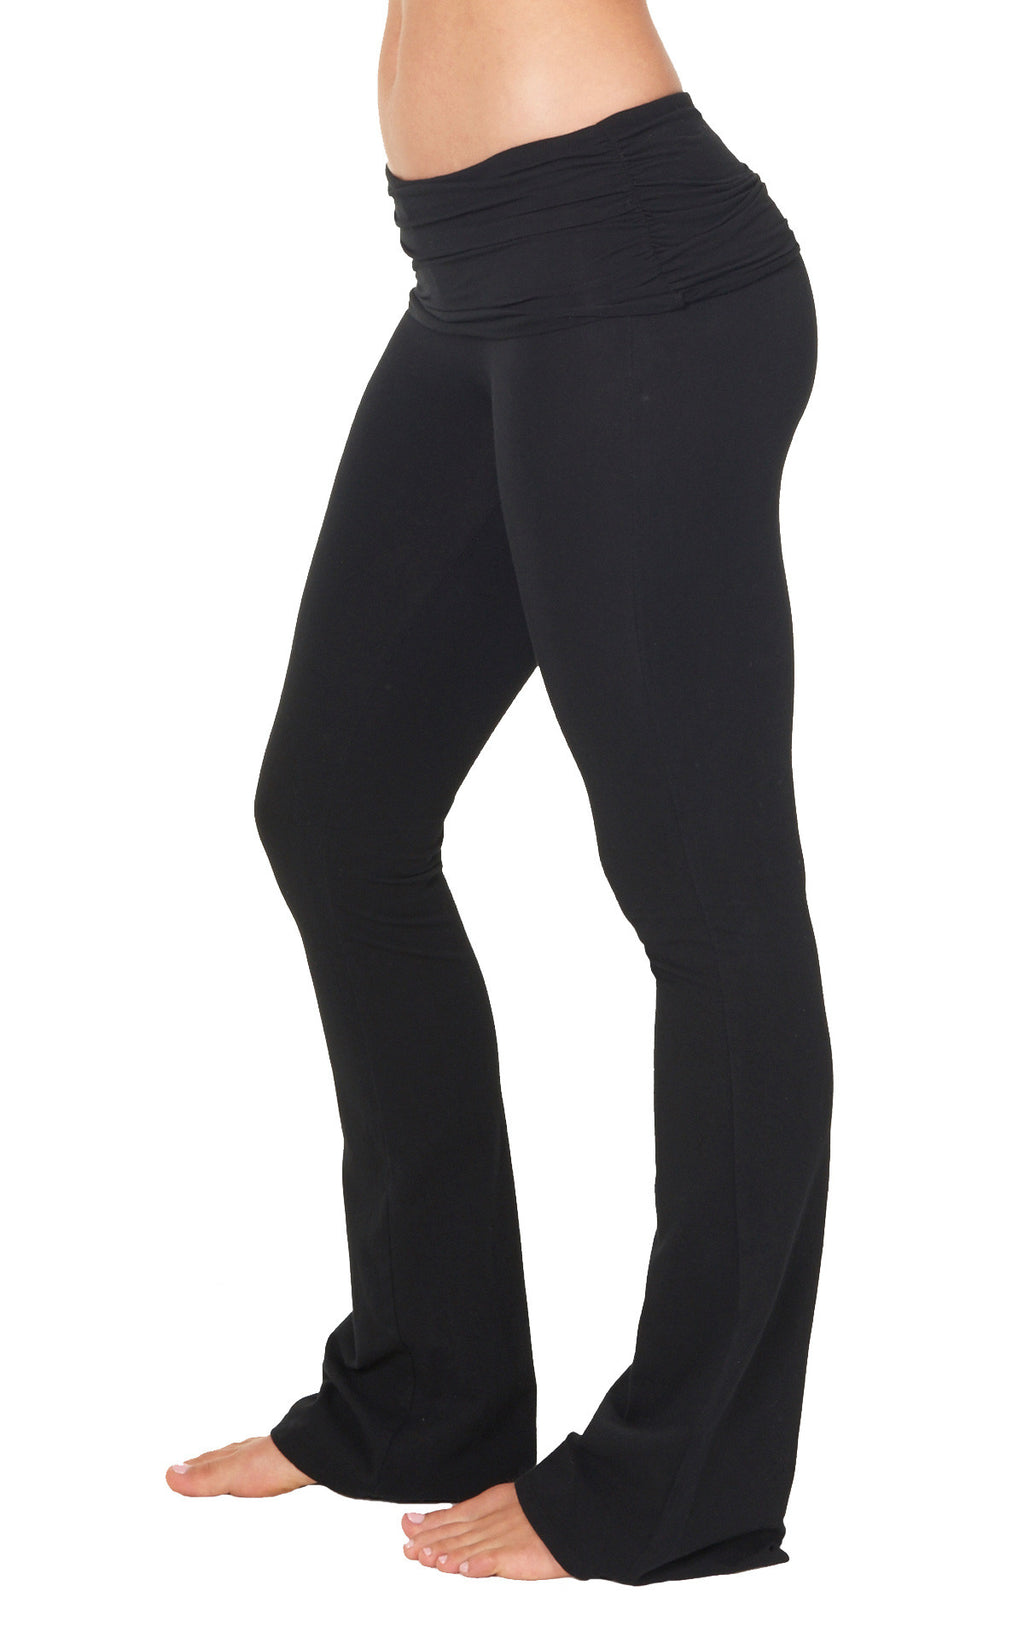 Side view of fitted Black Organic cotton lycra bootcut flare  pant with shirred detail waist overlay.